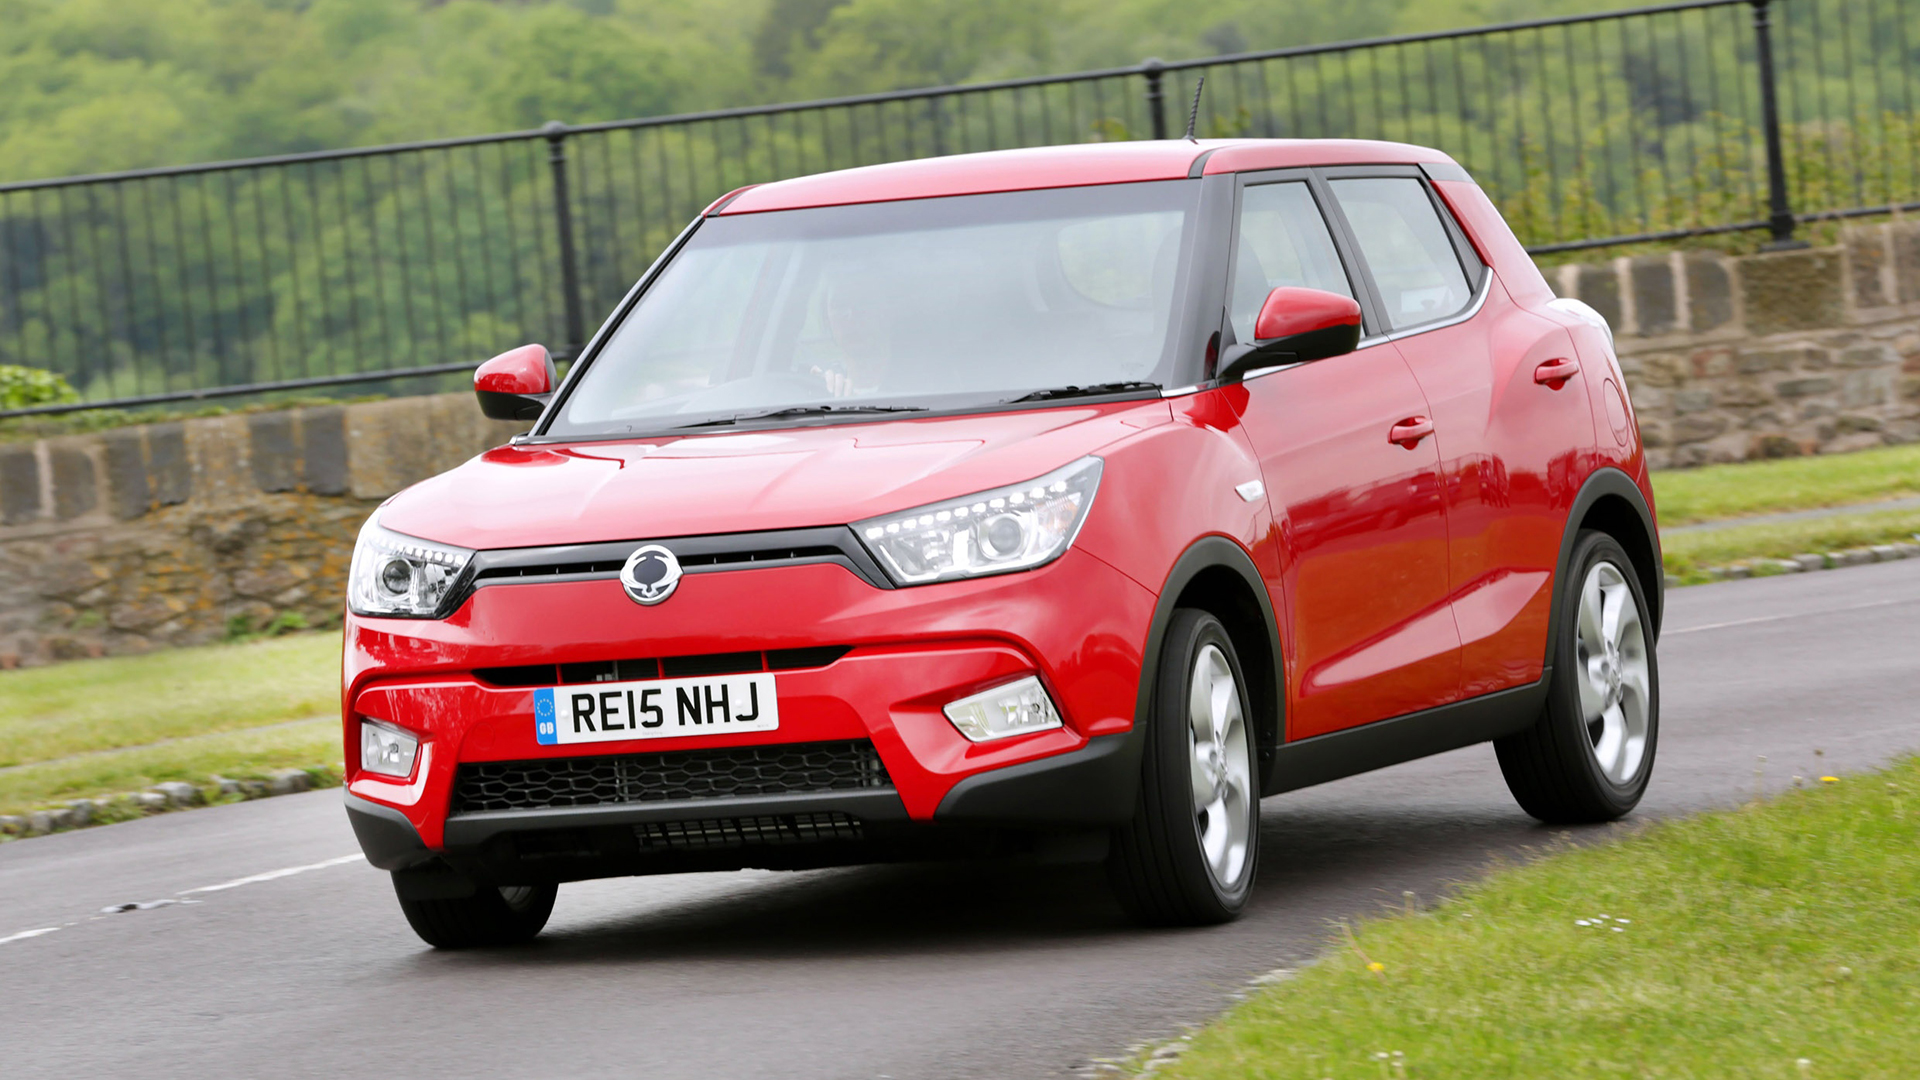 used ssangyong tivoli cars for sale on auto trader uk. Black Bedroom Furniture Sets. Home Design Ideas